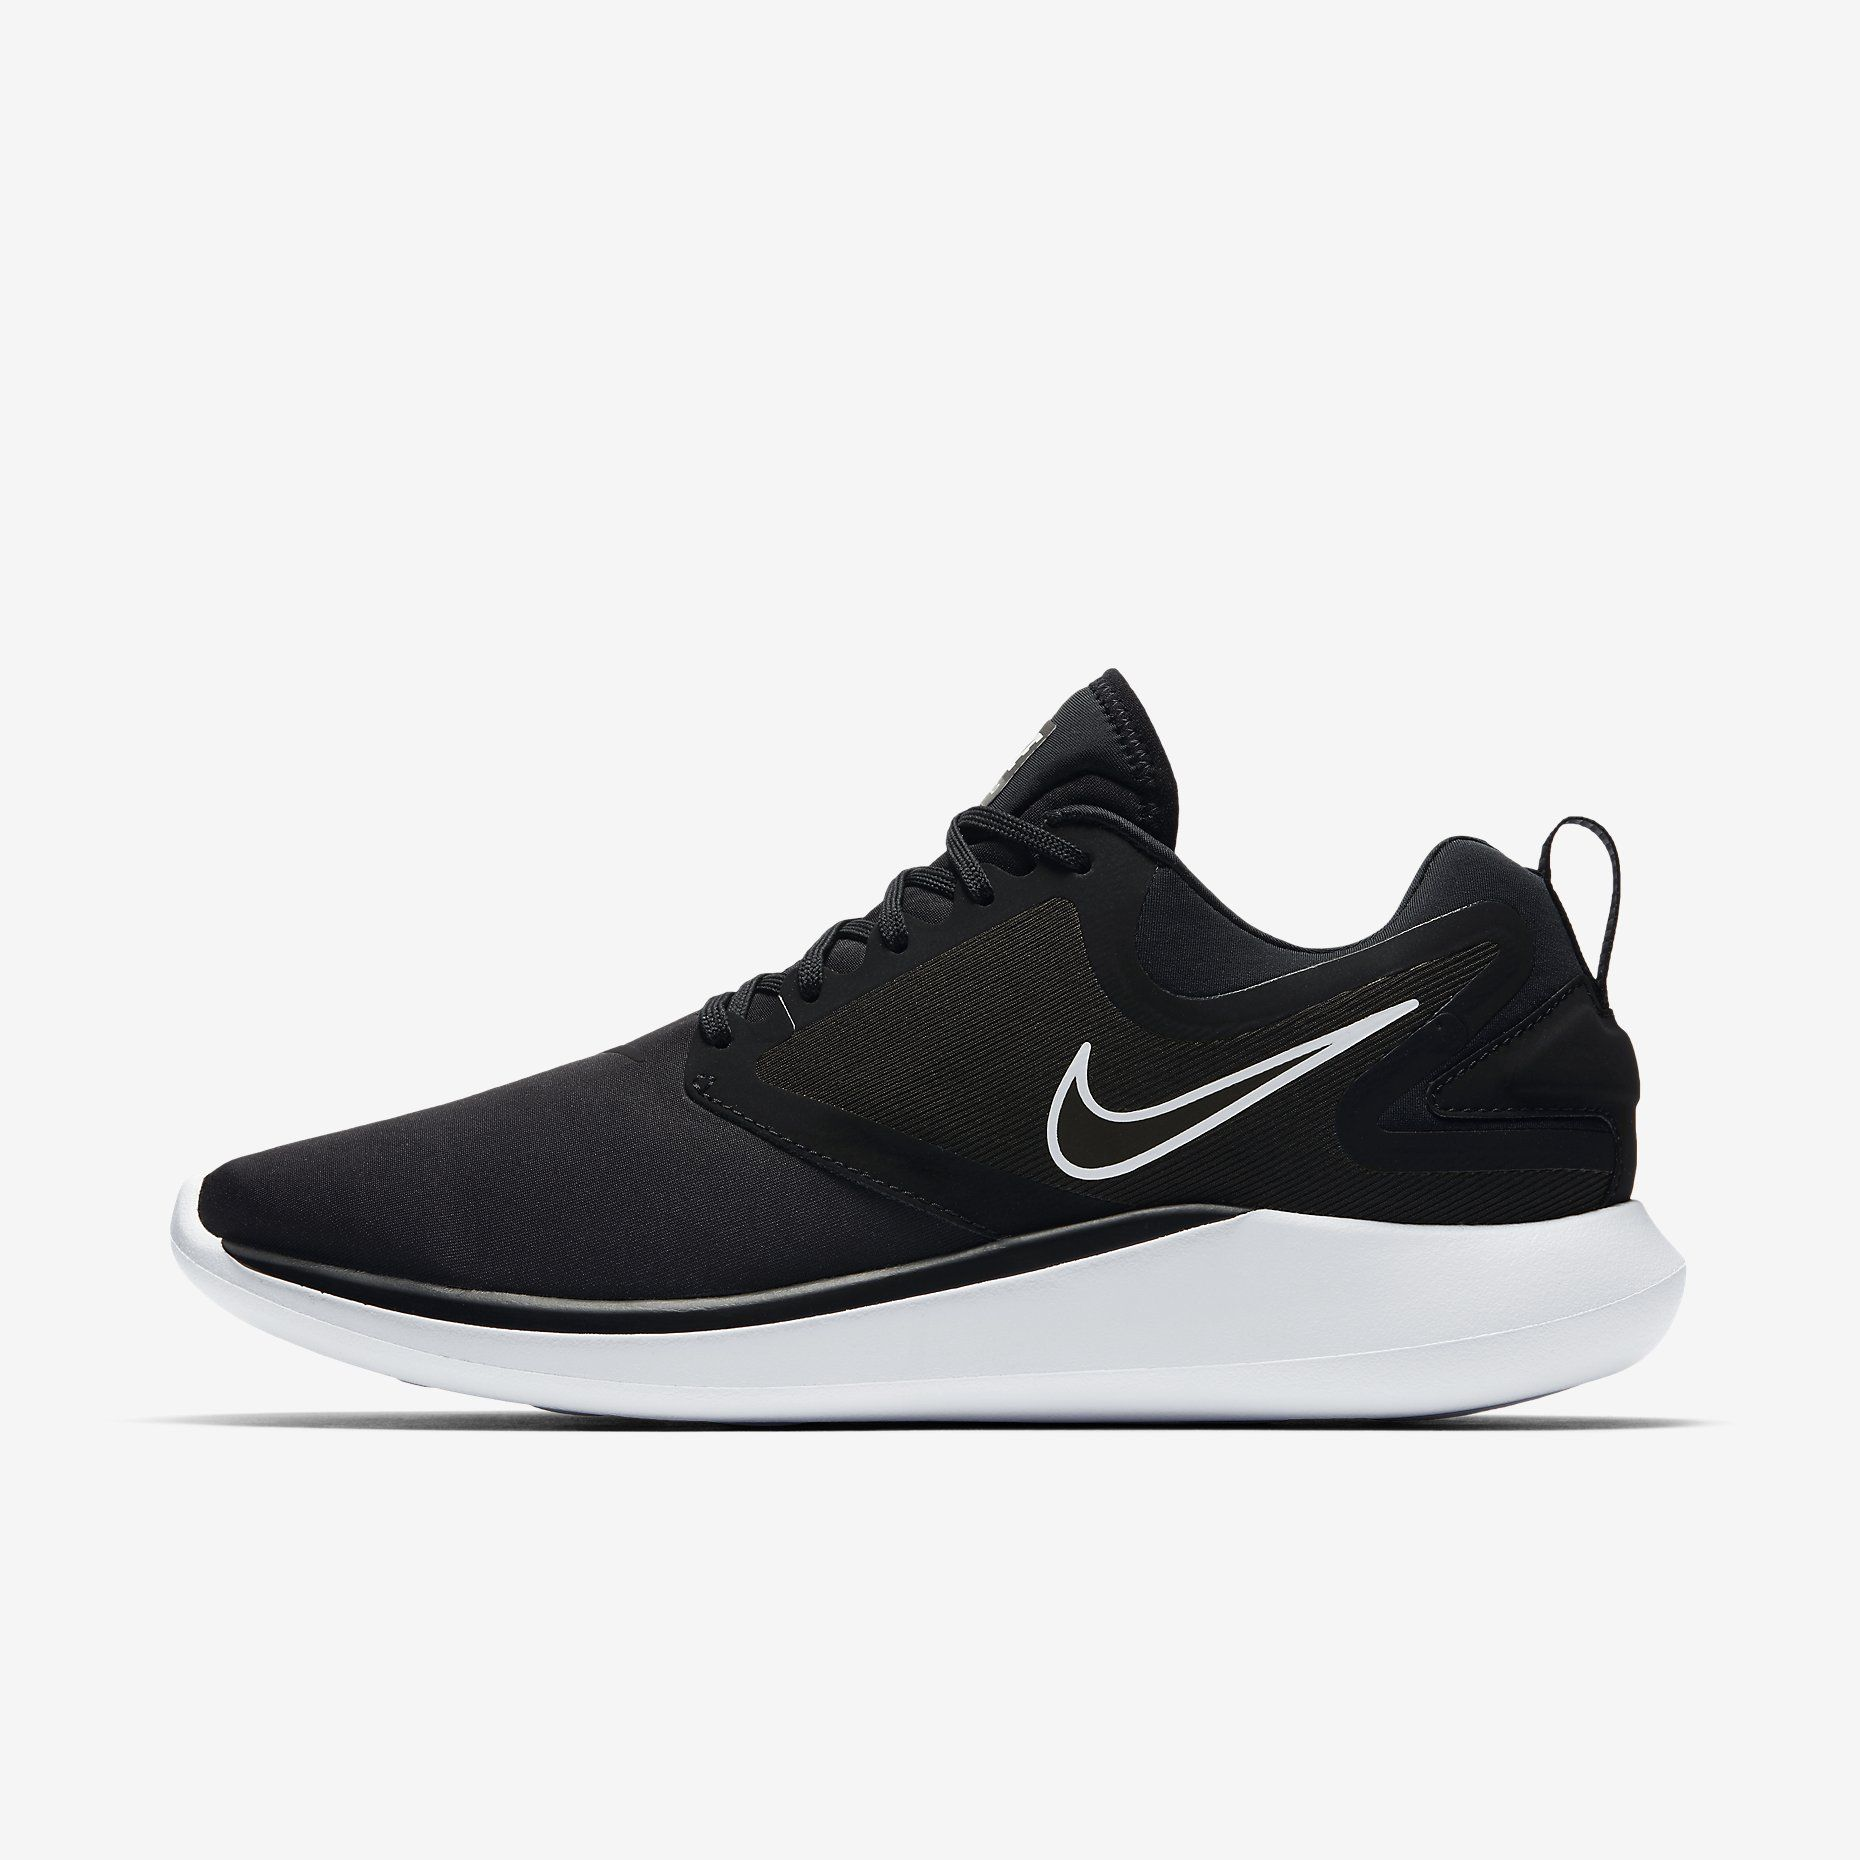 timeless design fa6d5 1b425 Shop Nike for shoes, clothing  gear at www.nike.com